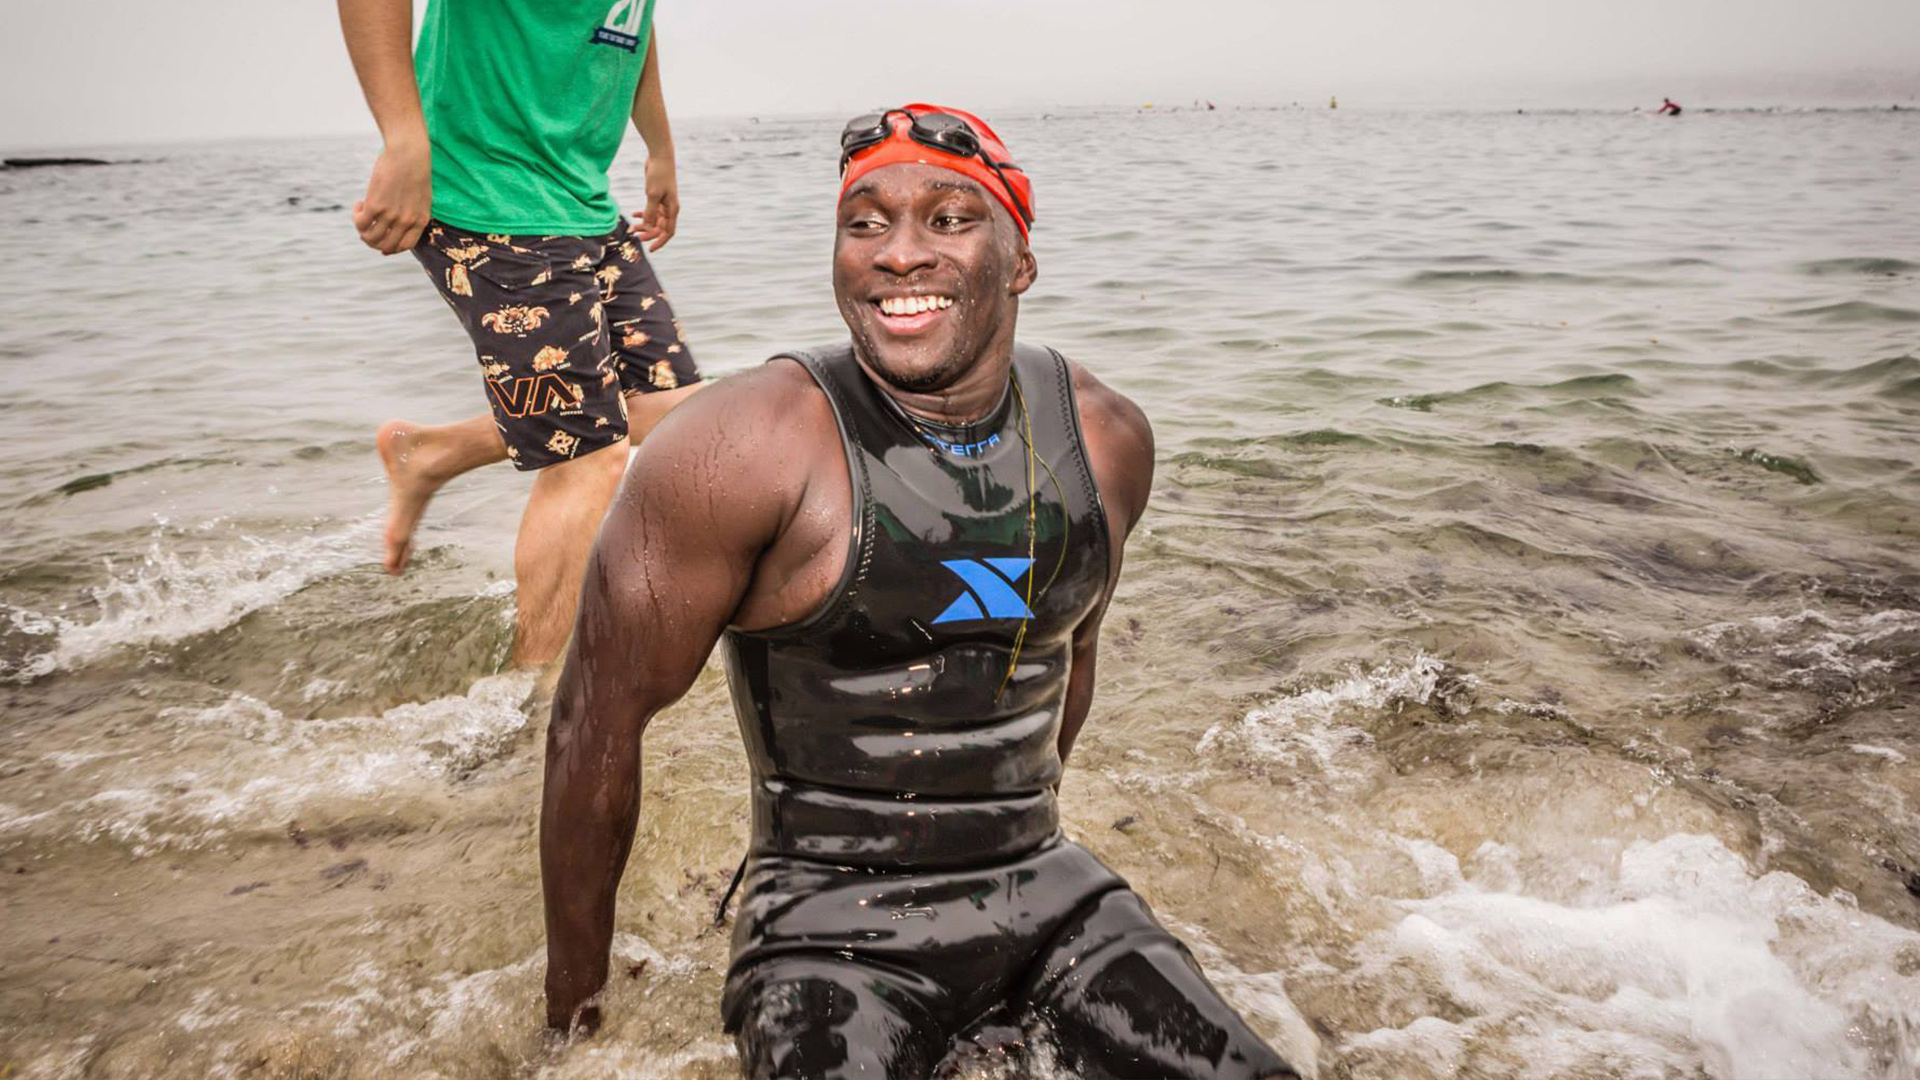 Roderick in photo from Challenged Athlete Foundation